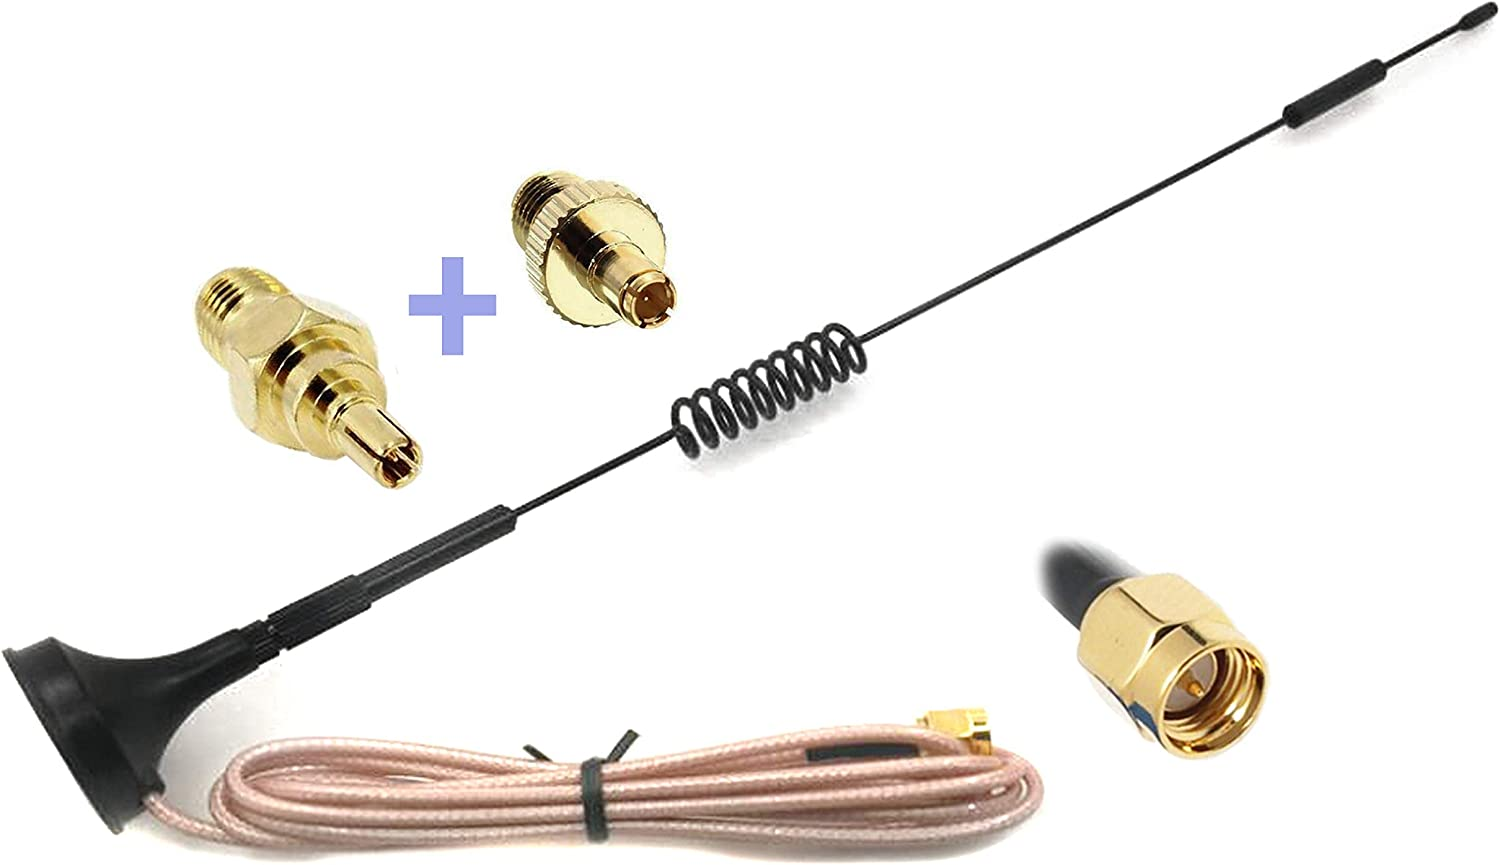 Universal Kit of 3G Max 63% OFF 4G LTE Dipole Band mart 7dBi Antenna Wide 698-270